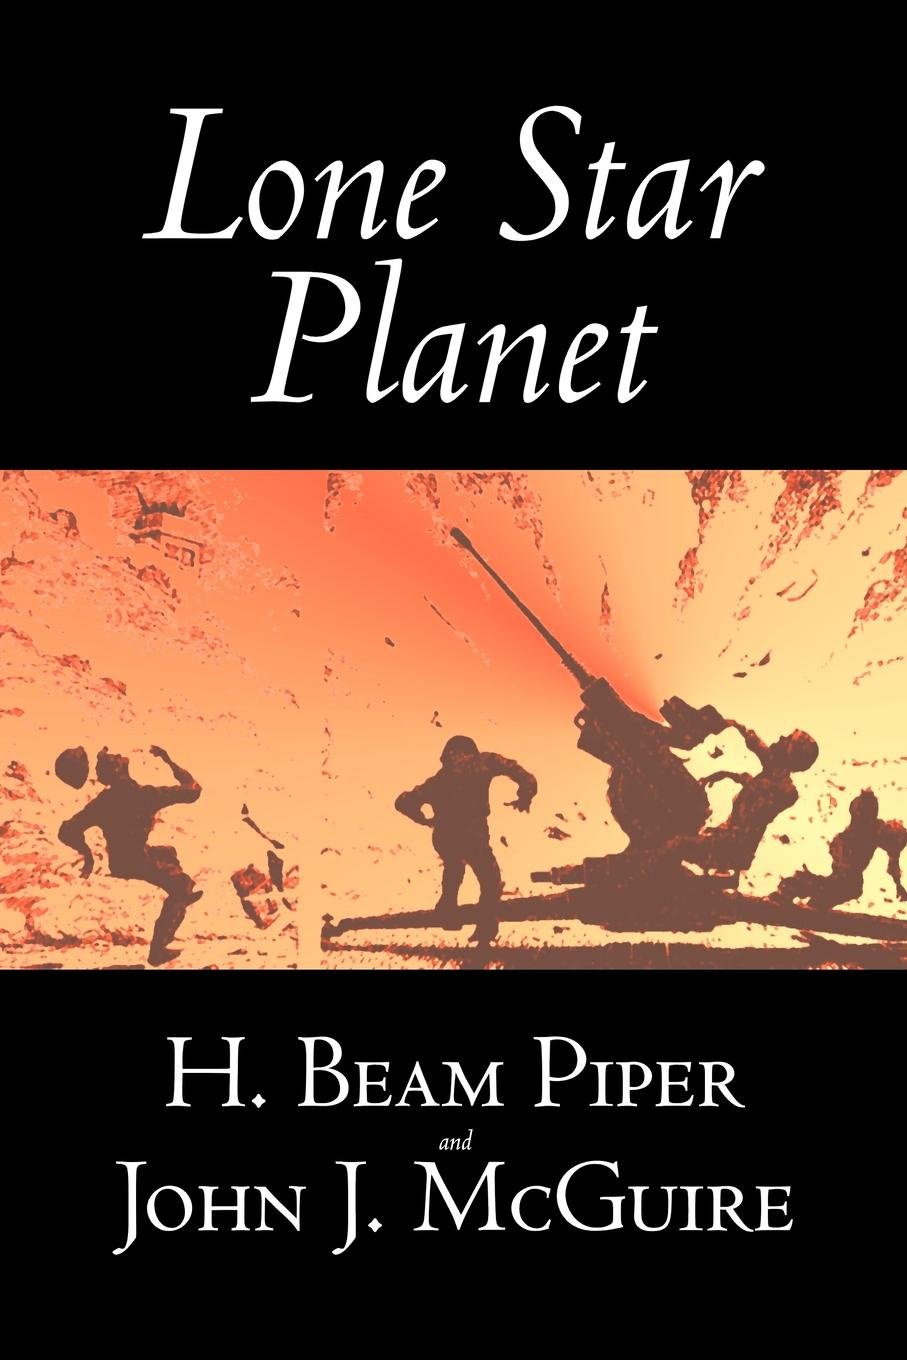 H. Beam Piper, John J. McGuire Lone Star Planet by H. Beam Piper, Science Fiction, Adventure henry beam piper paratime